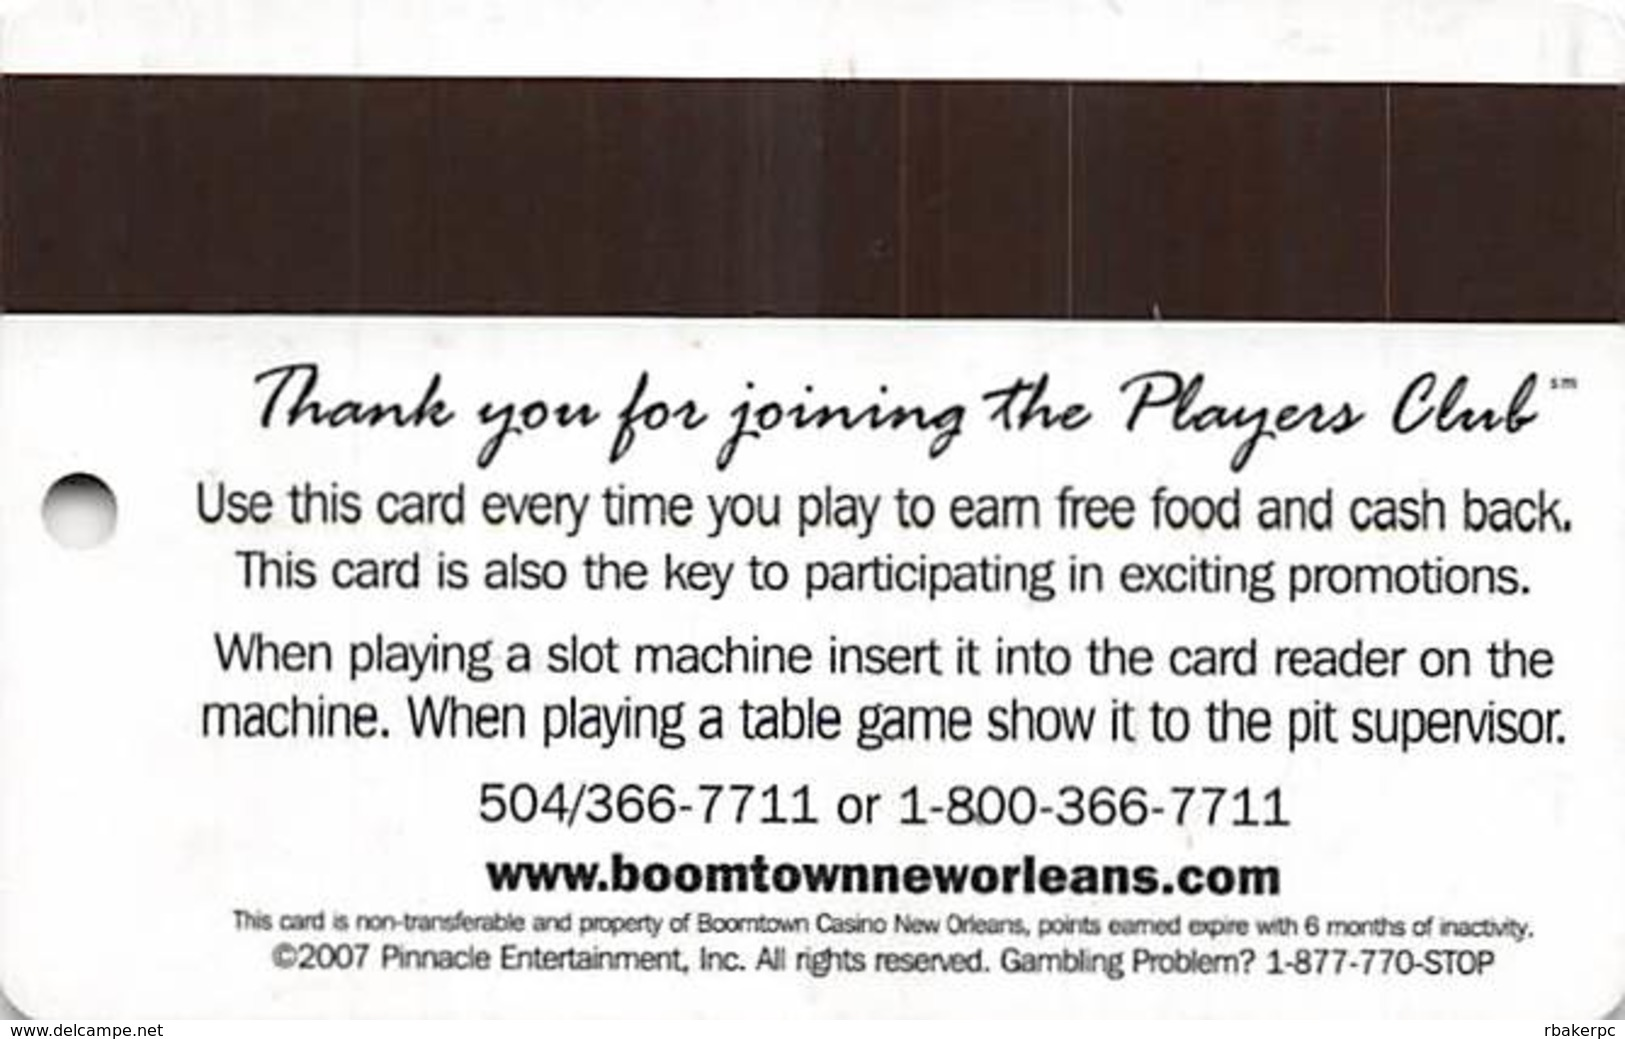 Boomtown Westbank Casino New Orleans, LA - Slot Card - Casino Cards